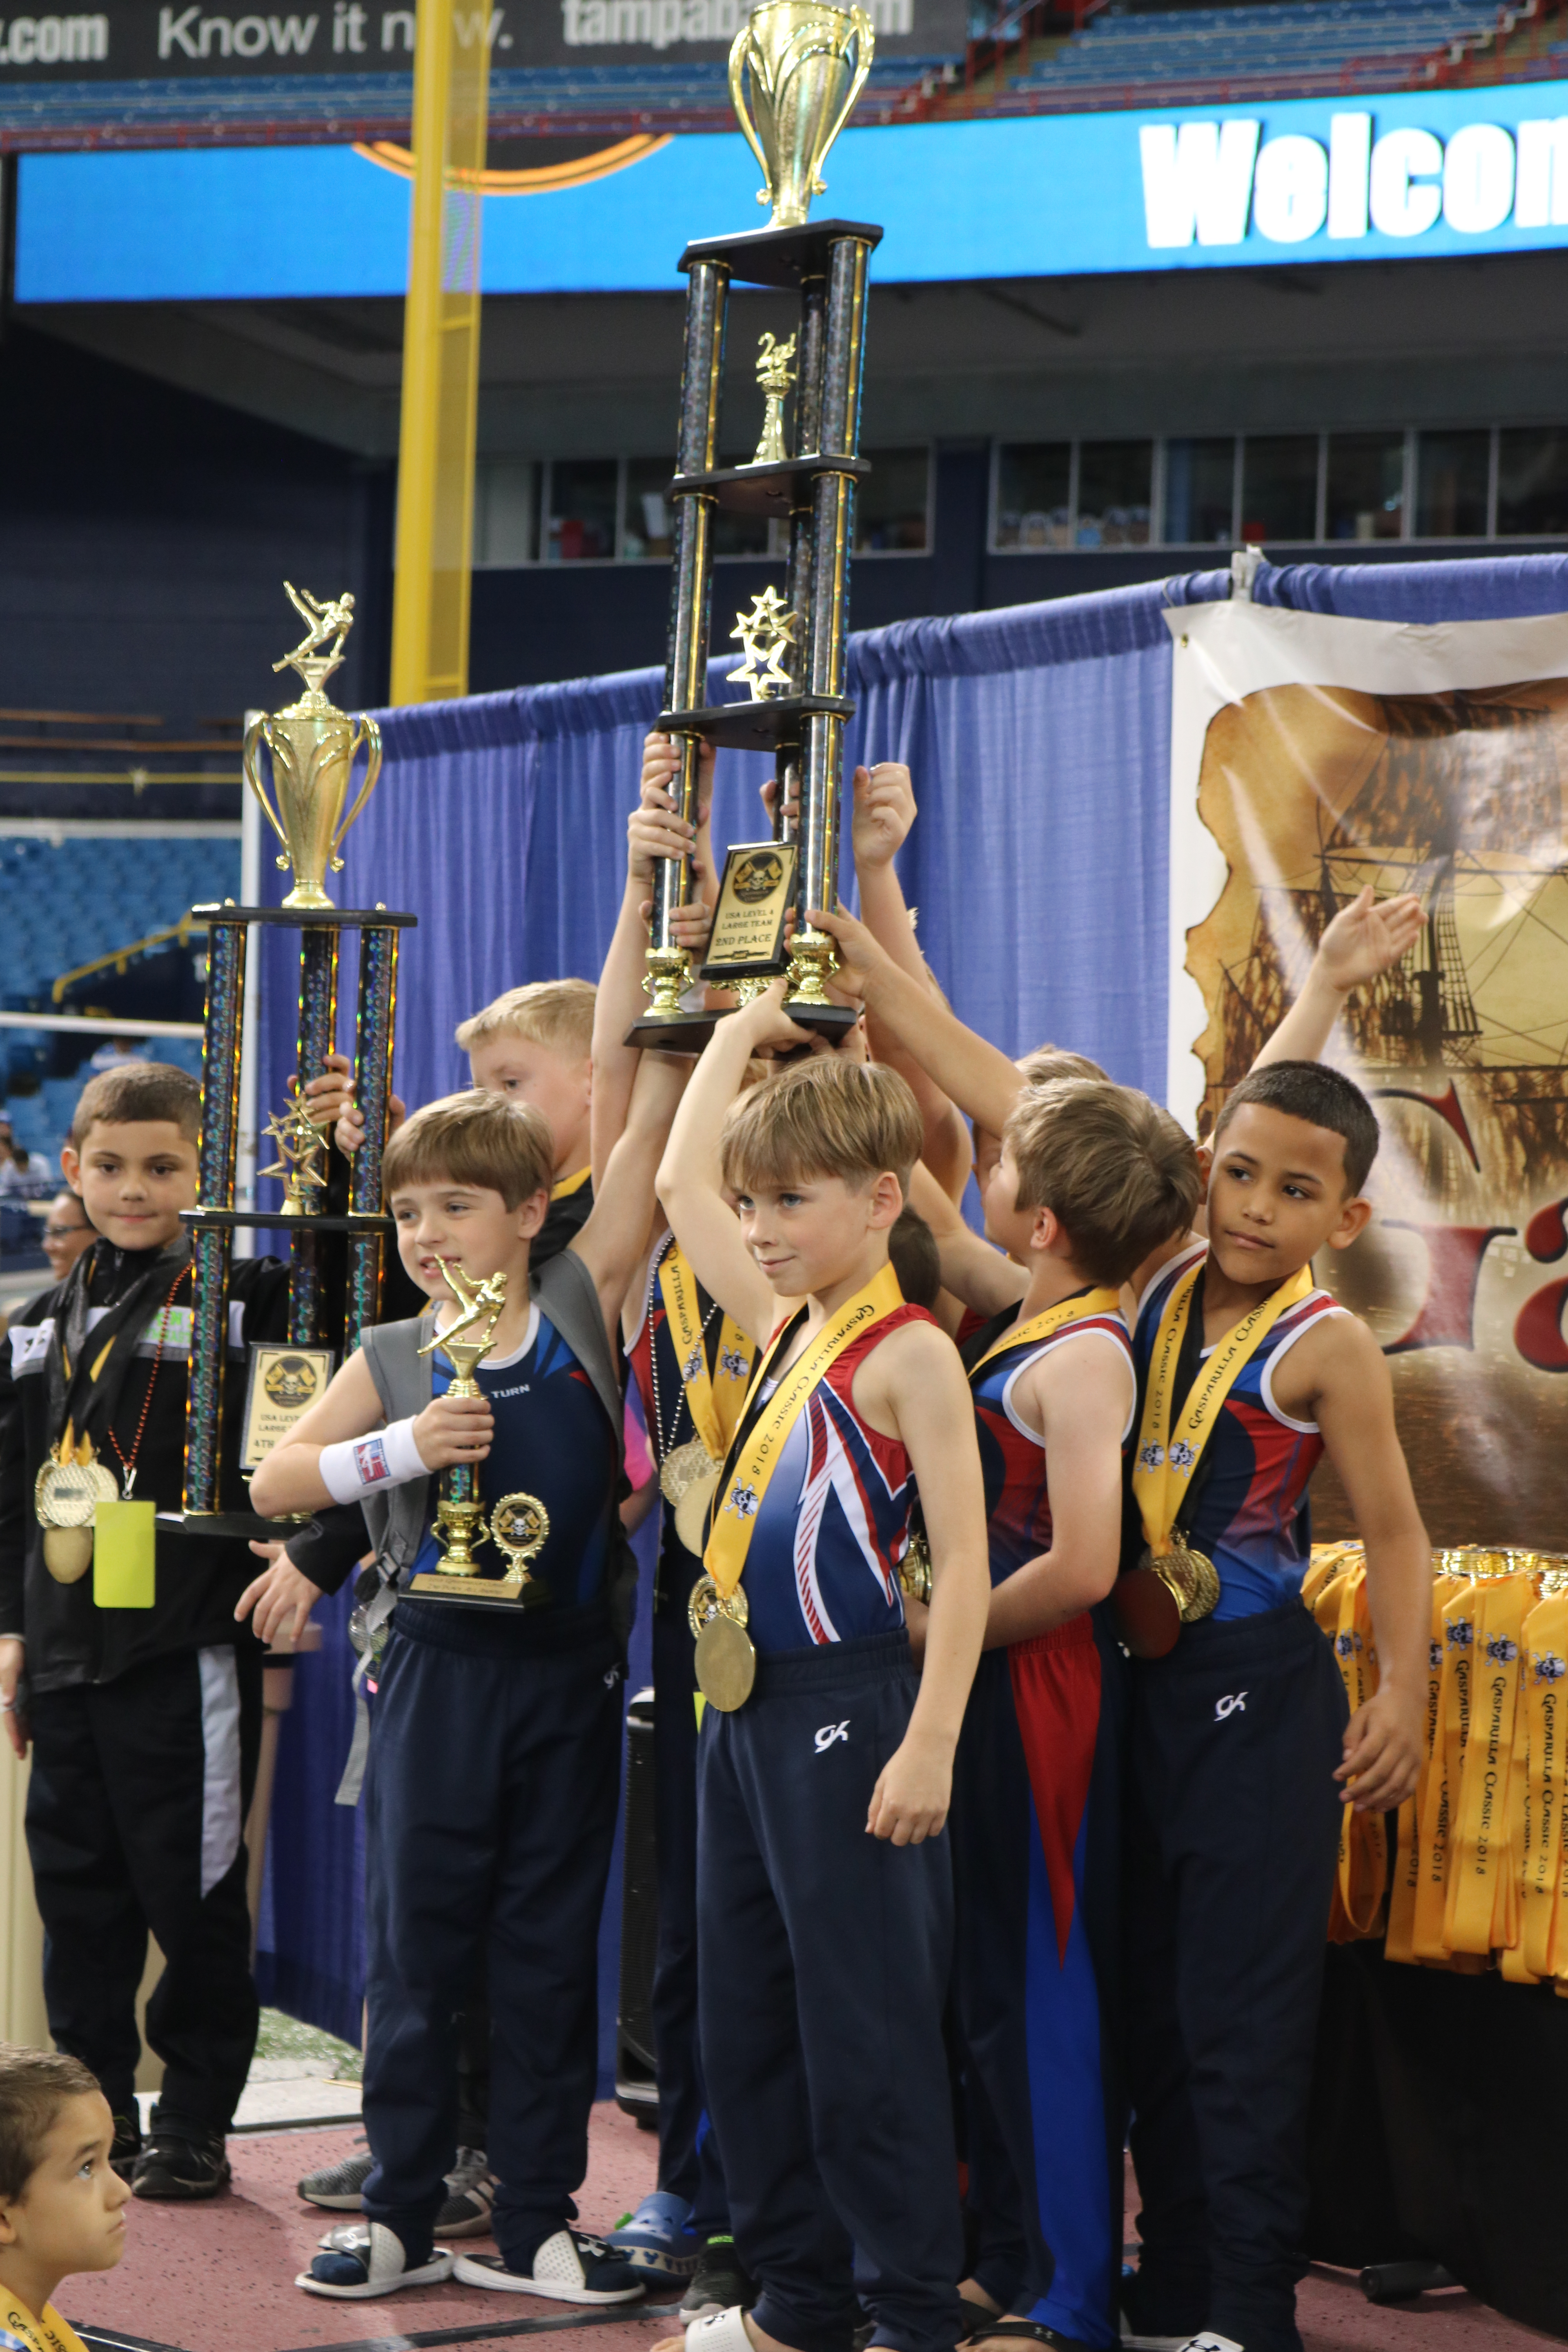 kids lifting trophy